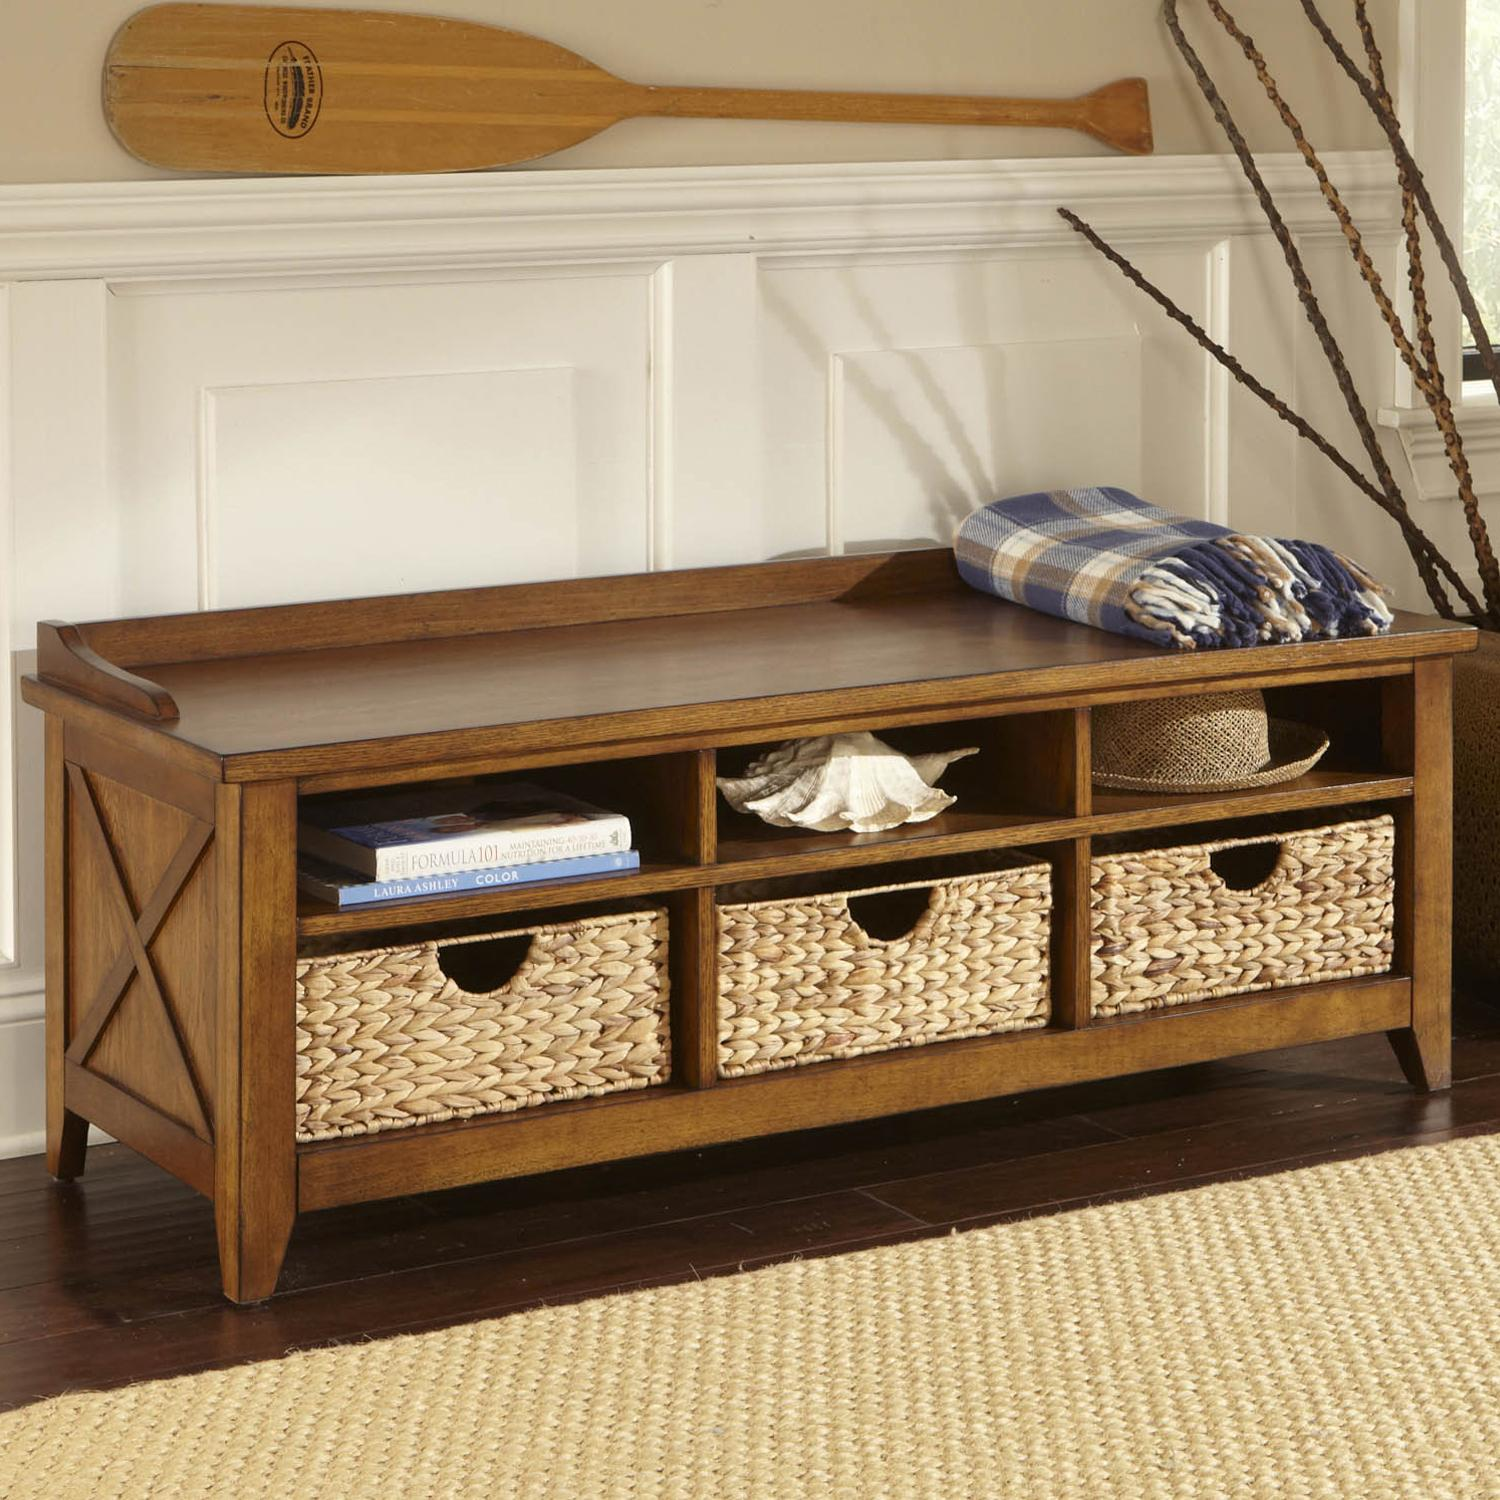 benches for living rooms interior room design ideas liberty furniture hearthstone cubby storage entryway bench royal